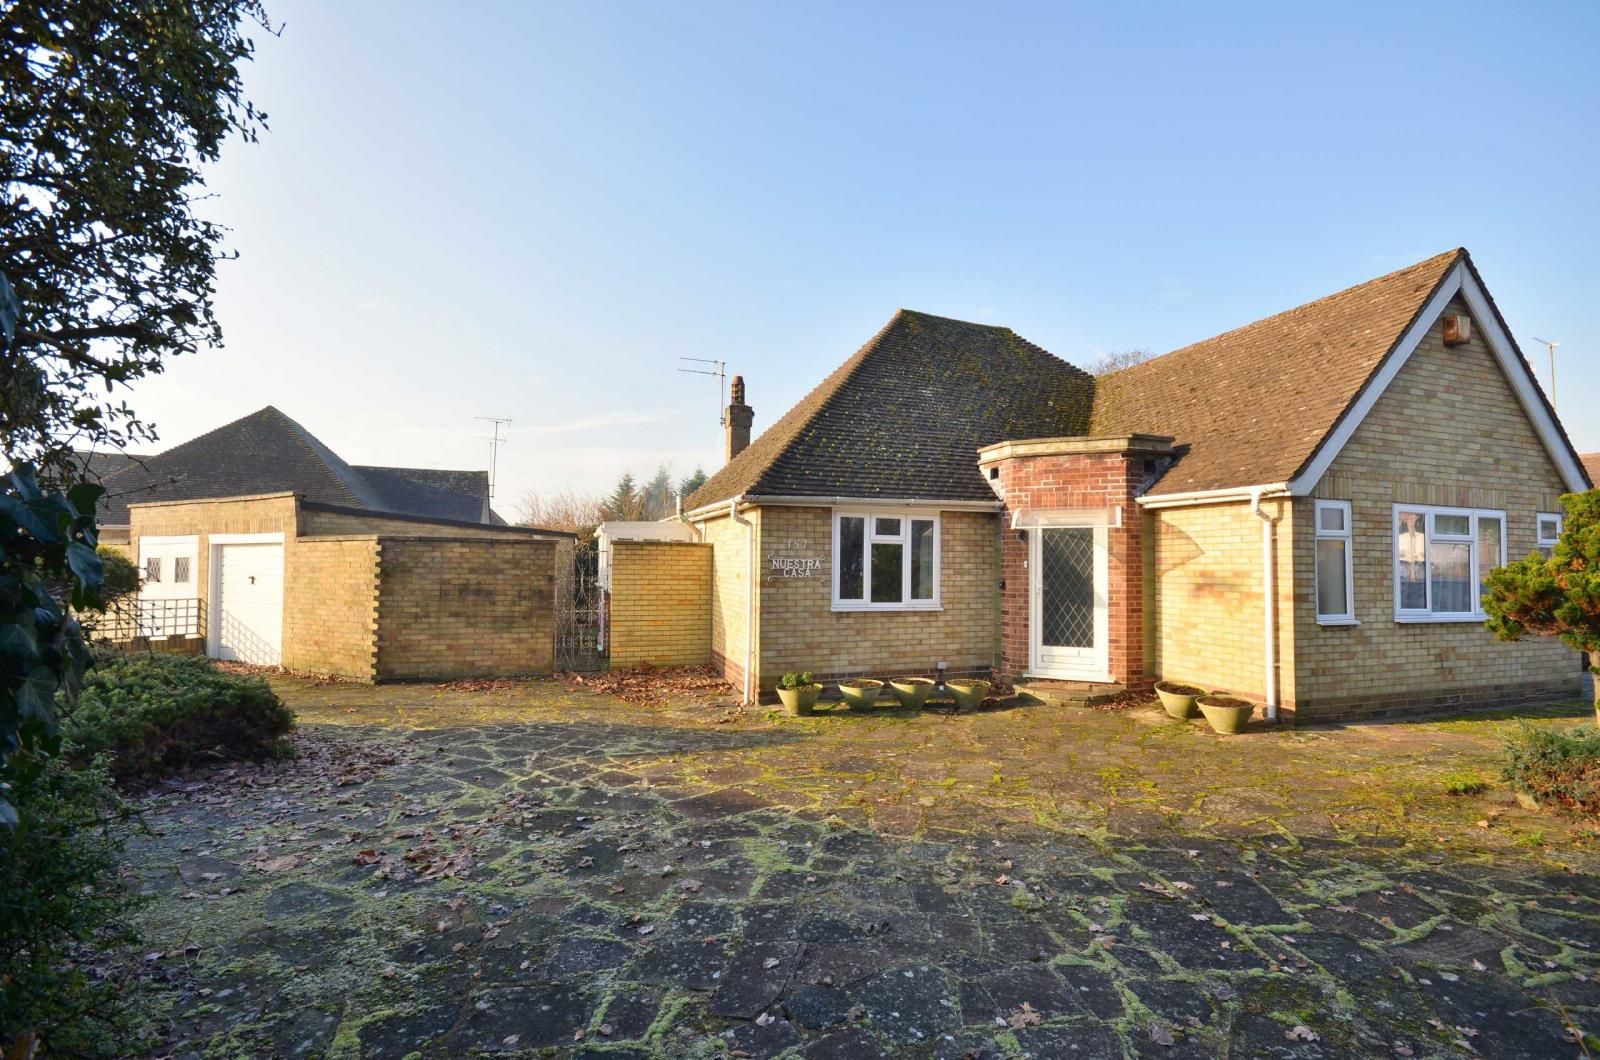 3 Bedrooms Detached Bungalow for sale in Cassiobury Drive, Watford, Hertfordshire, WD17